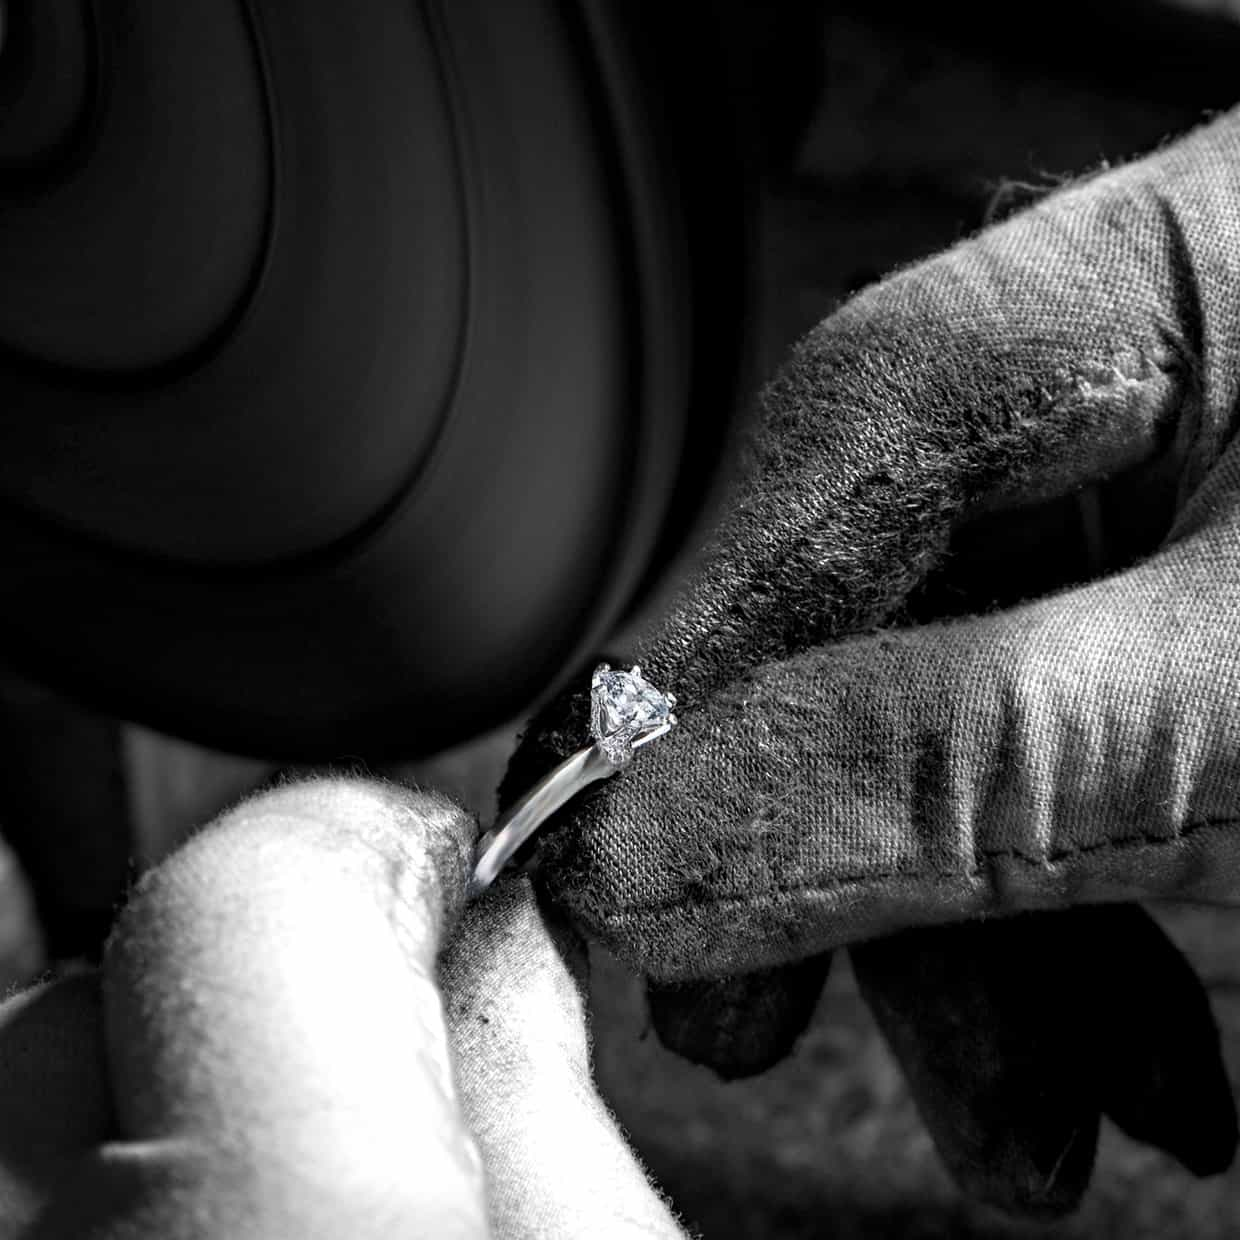 Crafting a silver ring